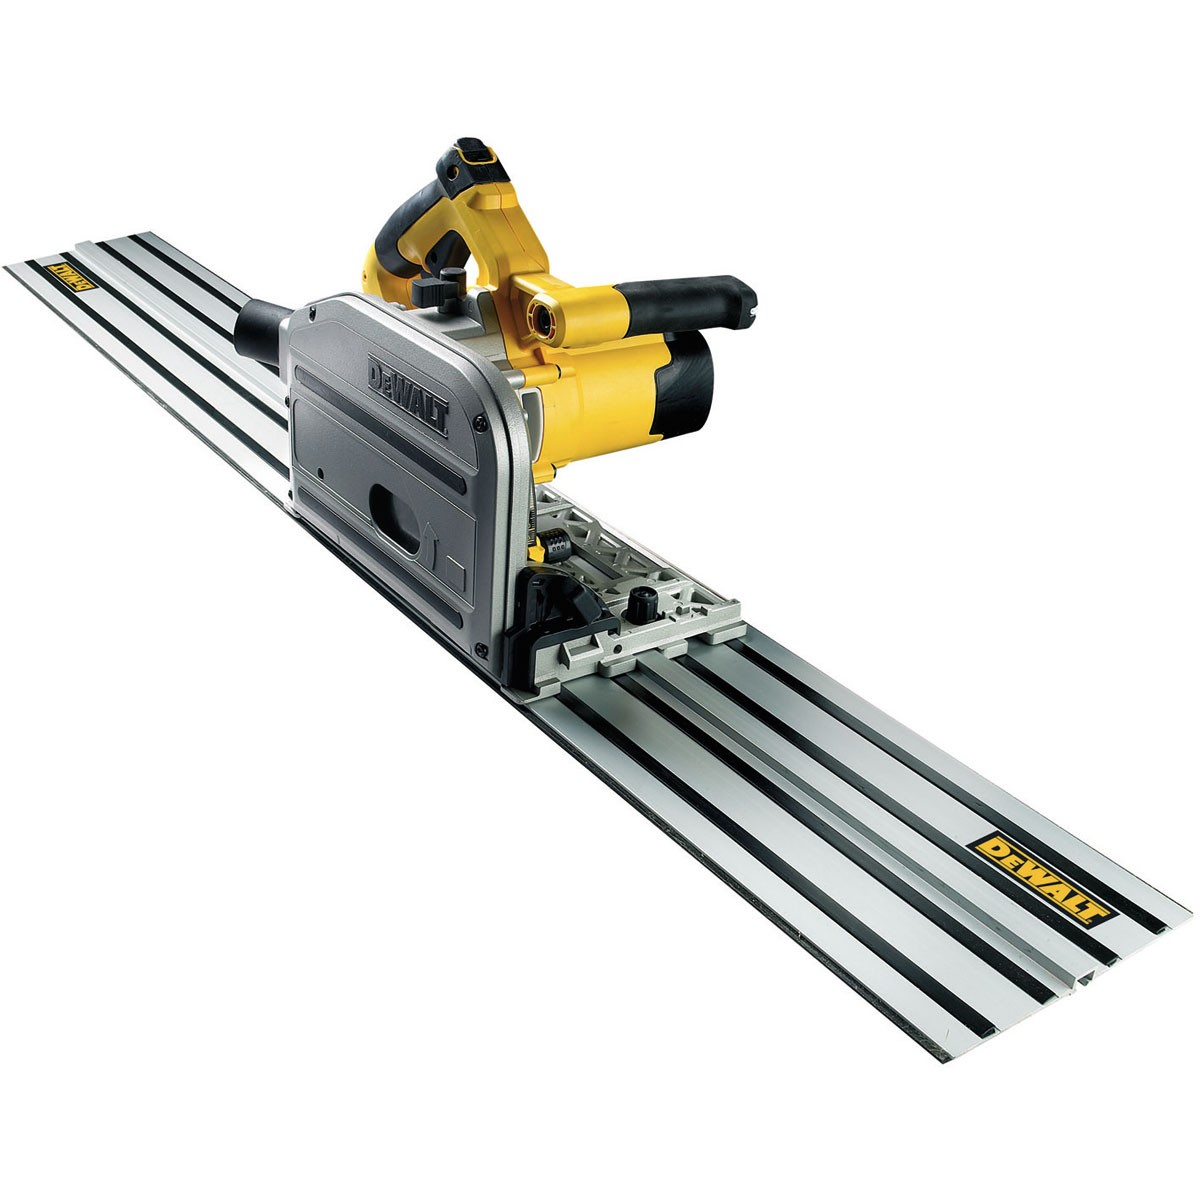 DeWalt DWS520KTR Plunge Saw & Guide Rail in TSTAK 110v